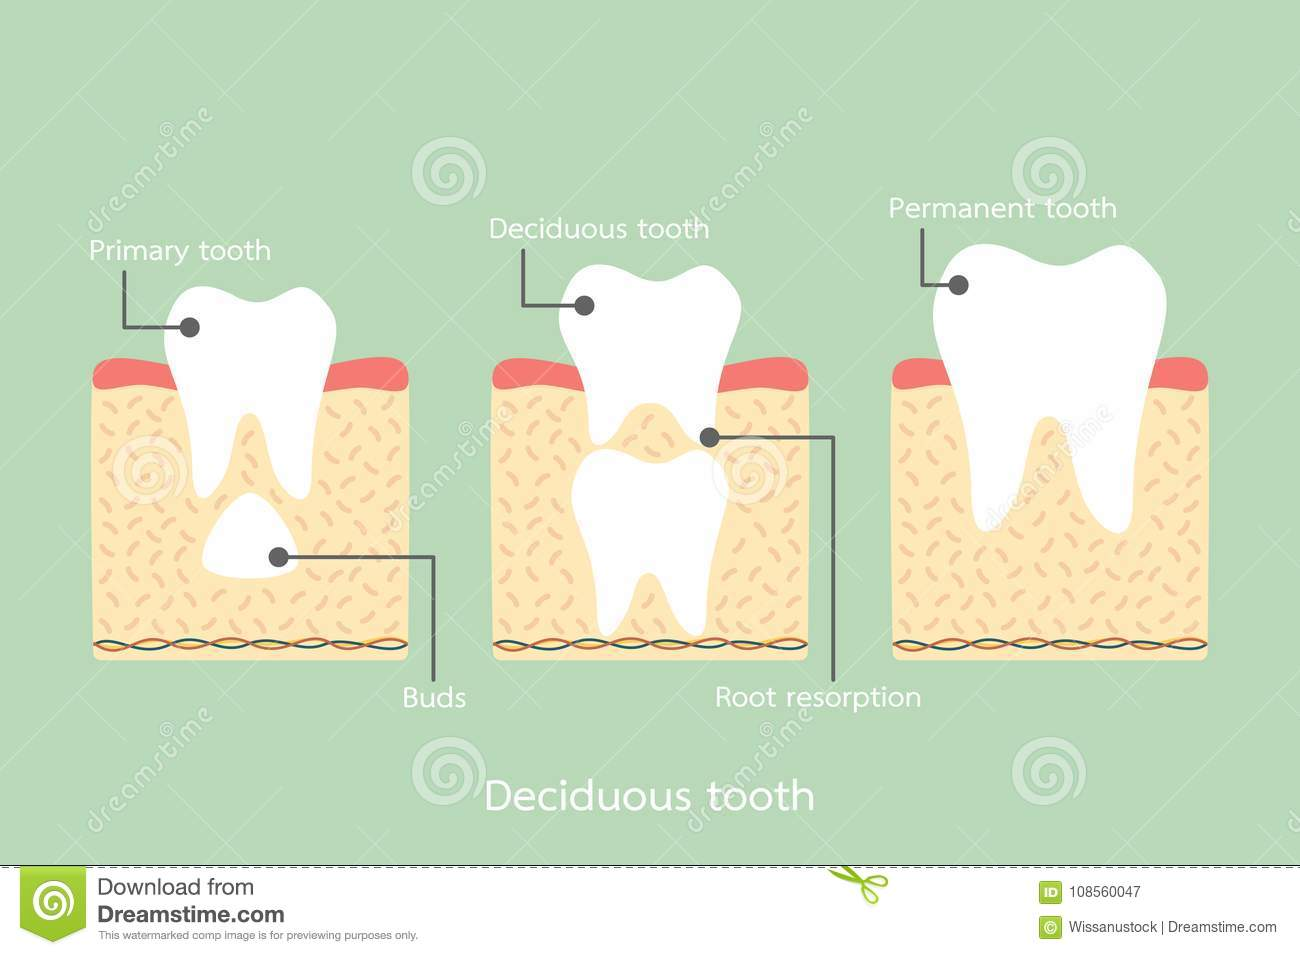 Permanent Tooth Located Below Primary Tooth, Anatomy Structure ...